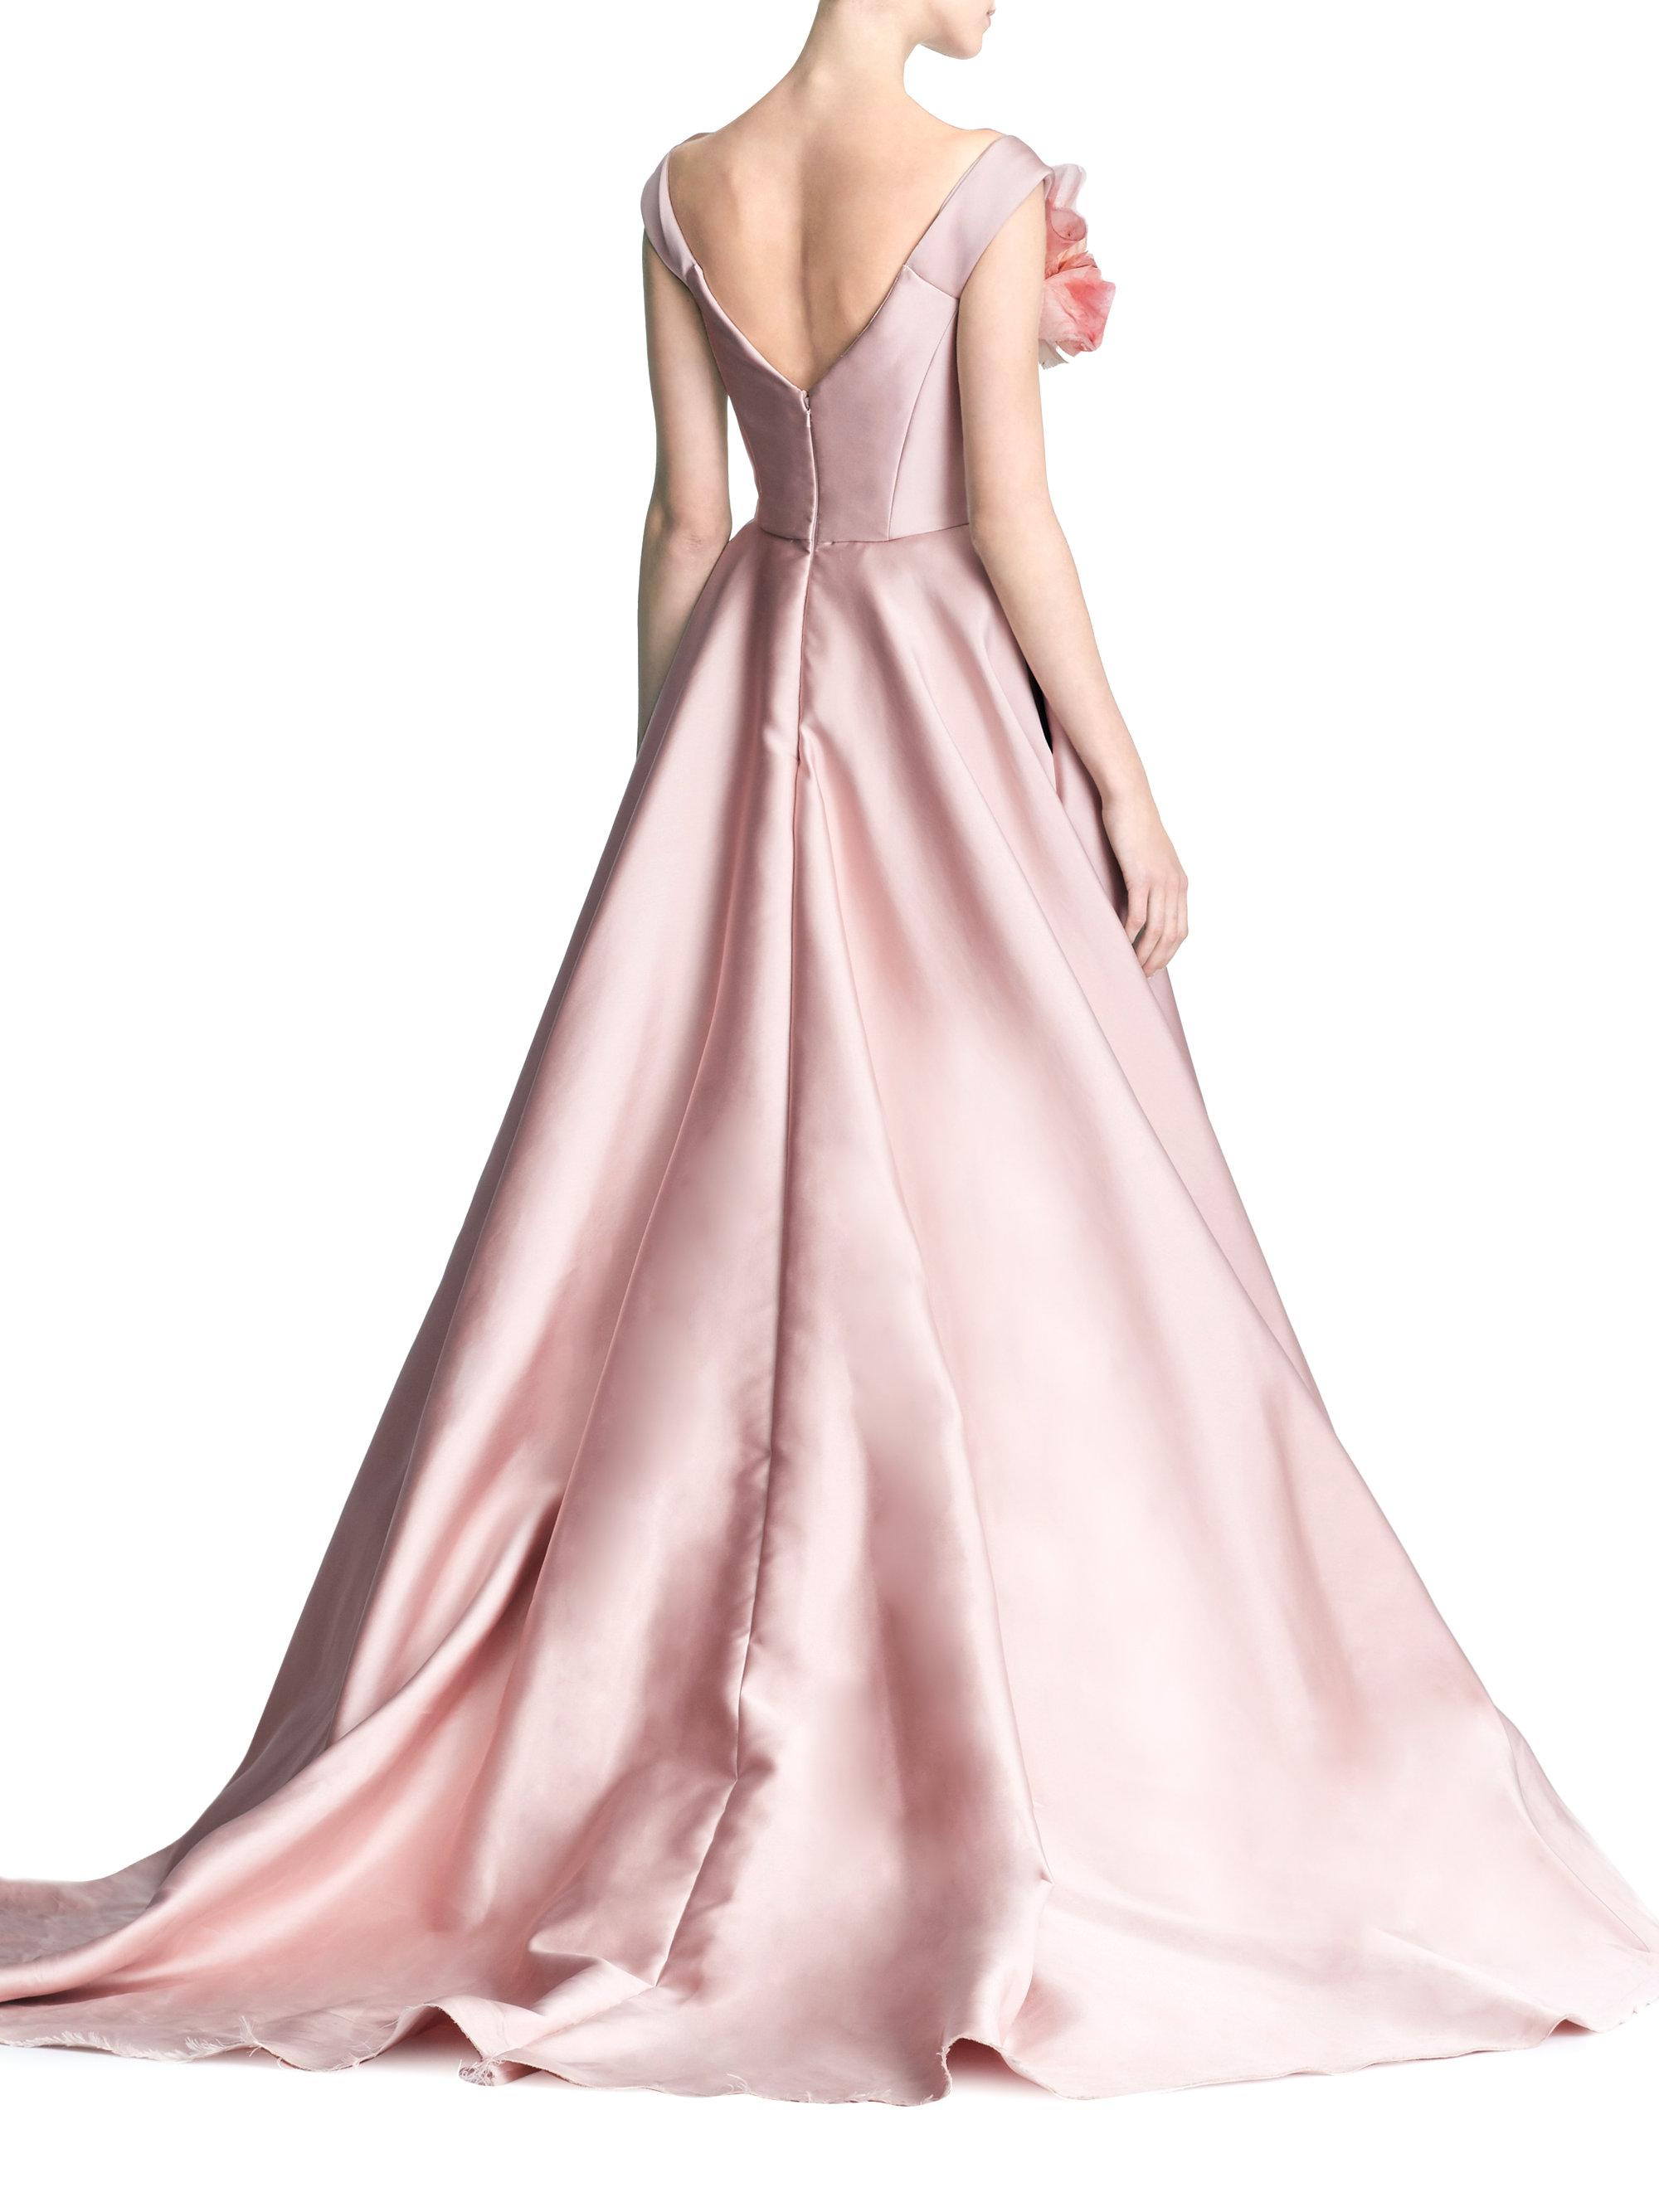 One Shoulder Color Blocked Ballgown Marchesa af6KSD